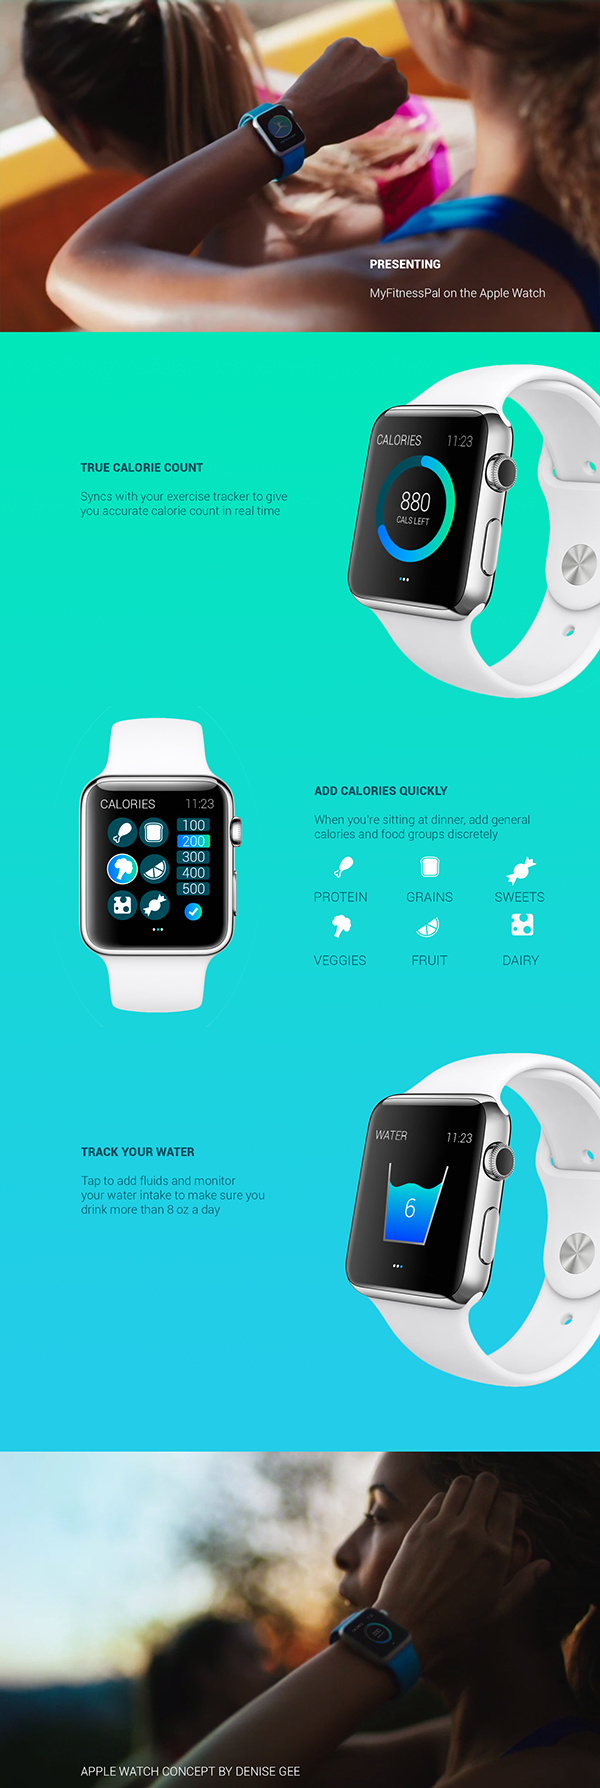 My Fitness Pal Apple Watch Concept WIP Apple watch